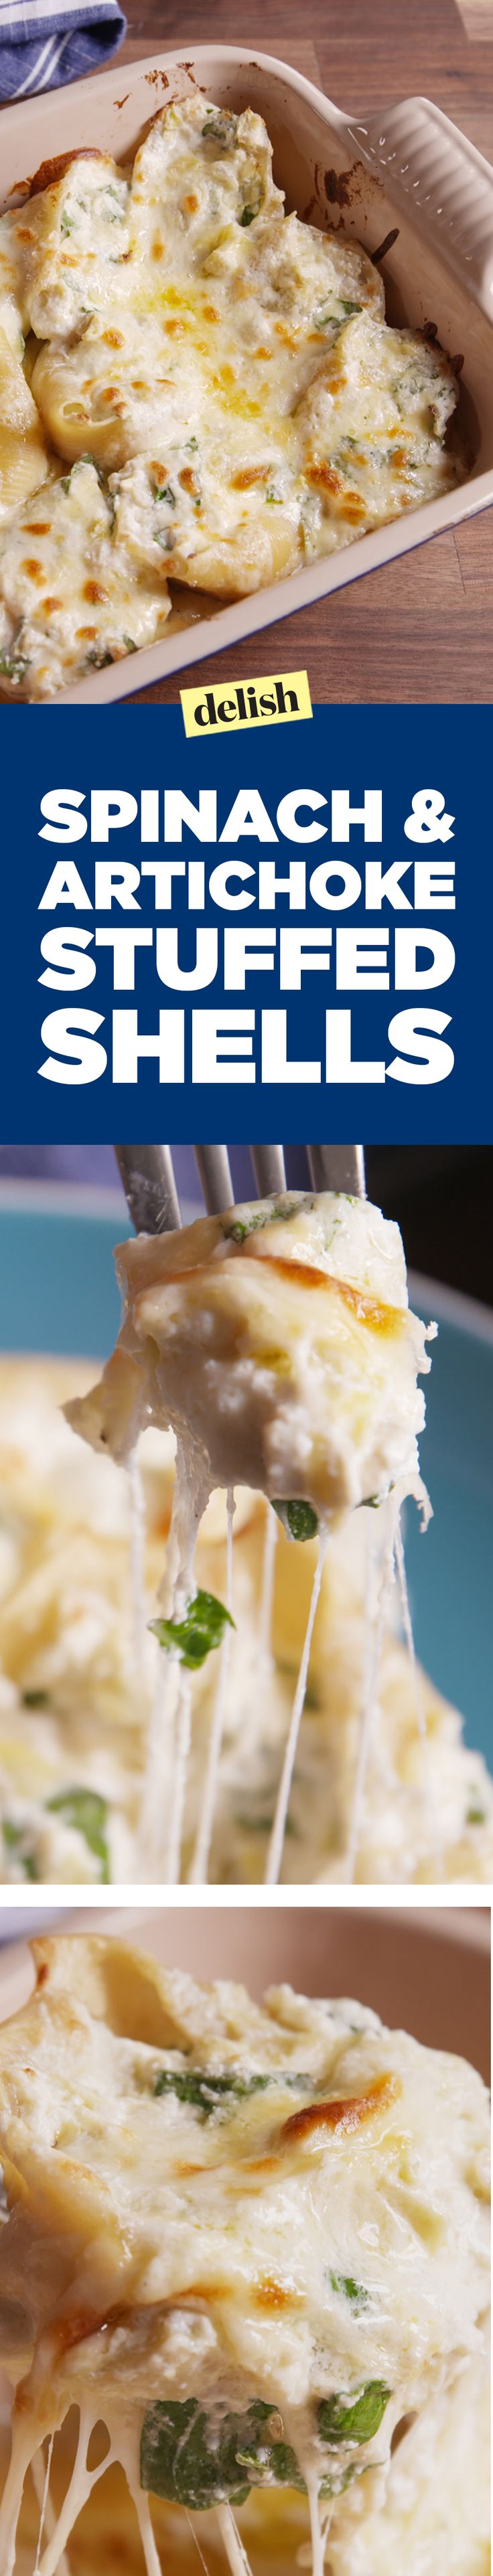 Spinach-artichoke stuffed shells combine your favorite dip with your favorite dinner. Get the recipe on Delish.com.